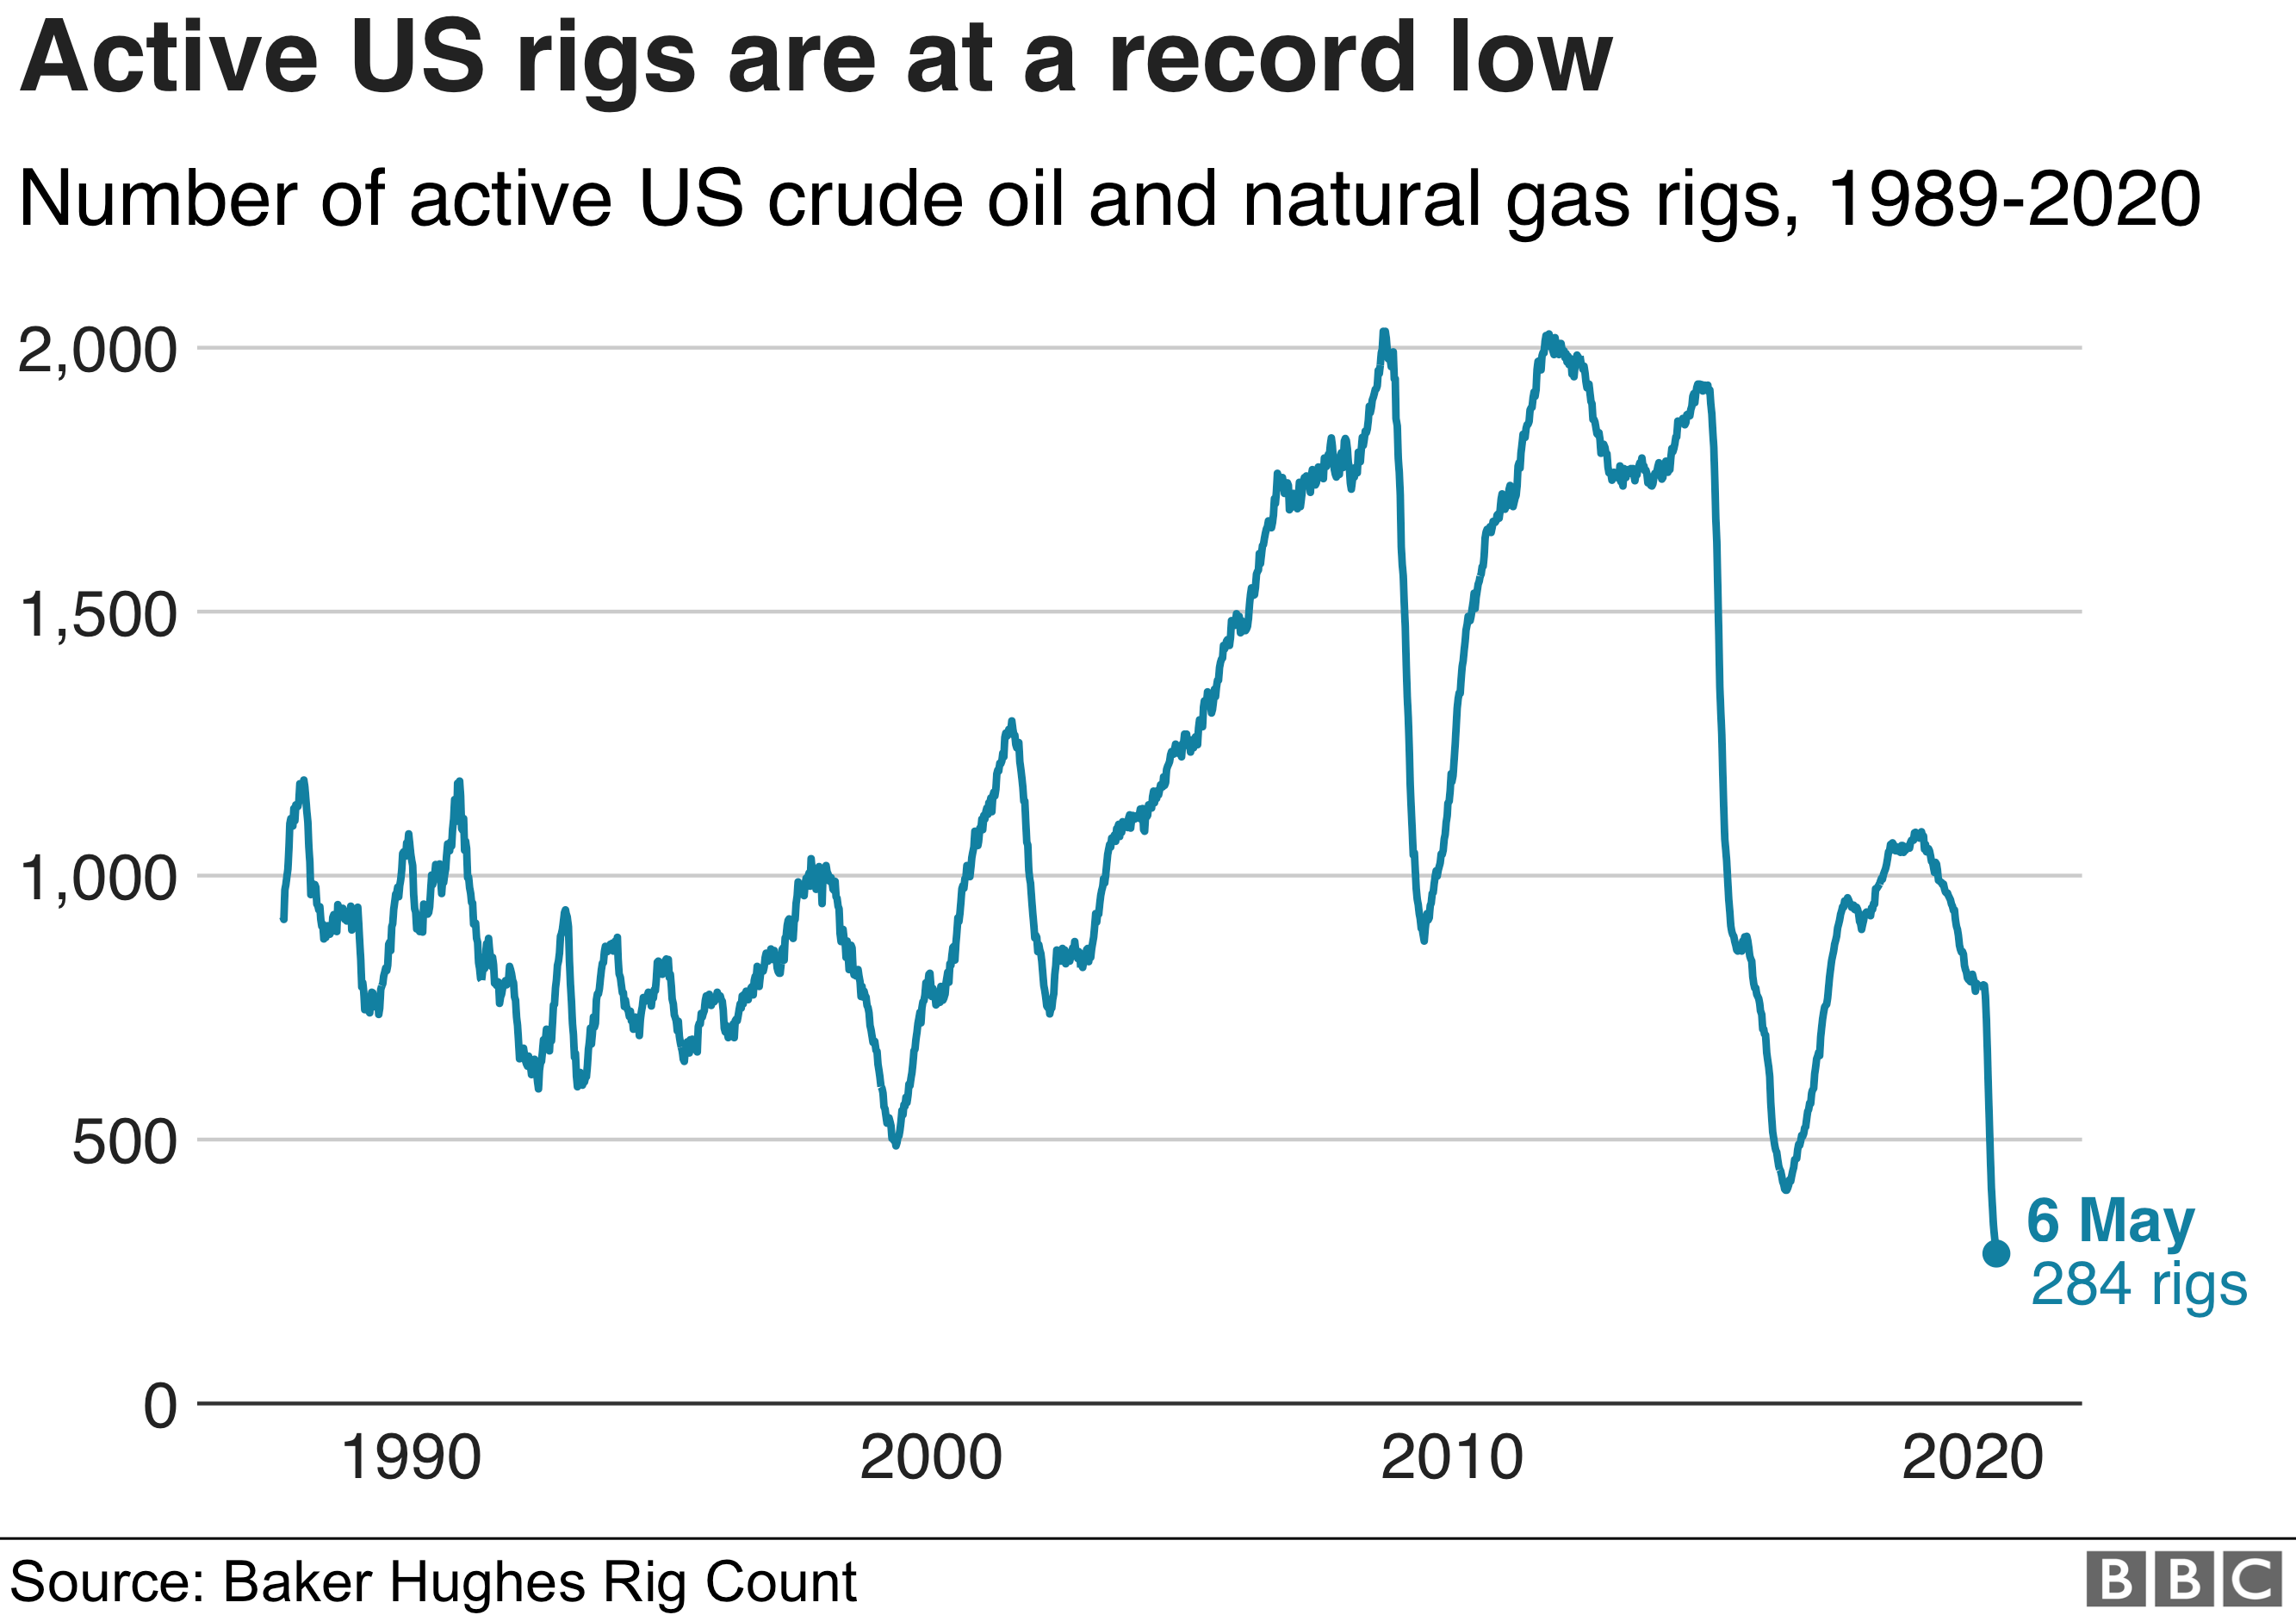 US rigs at a record low - infographic